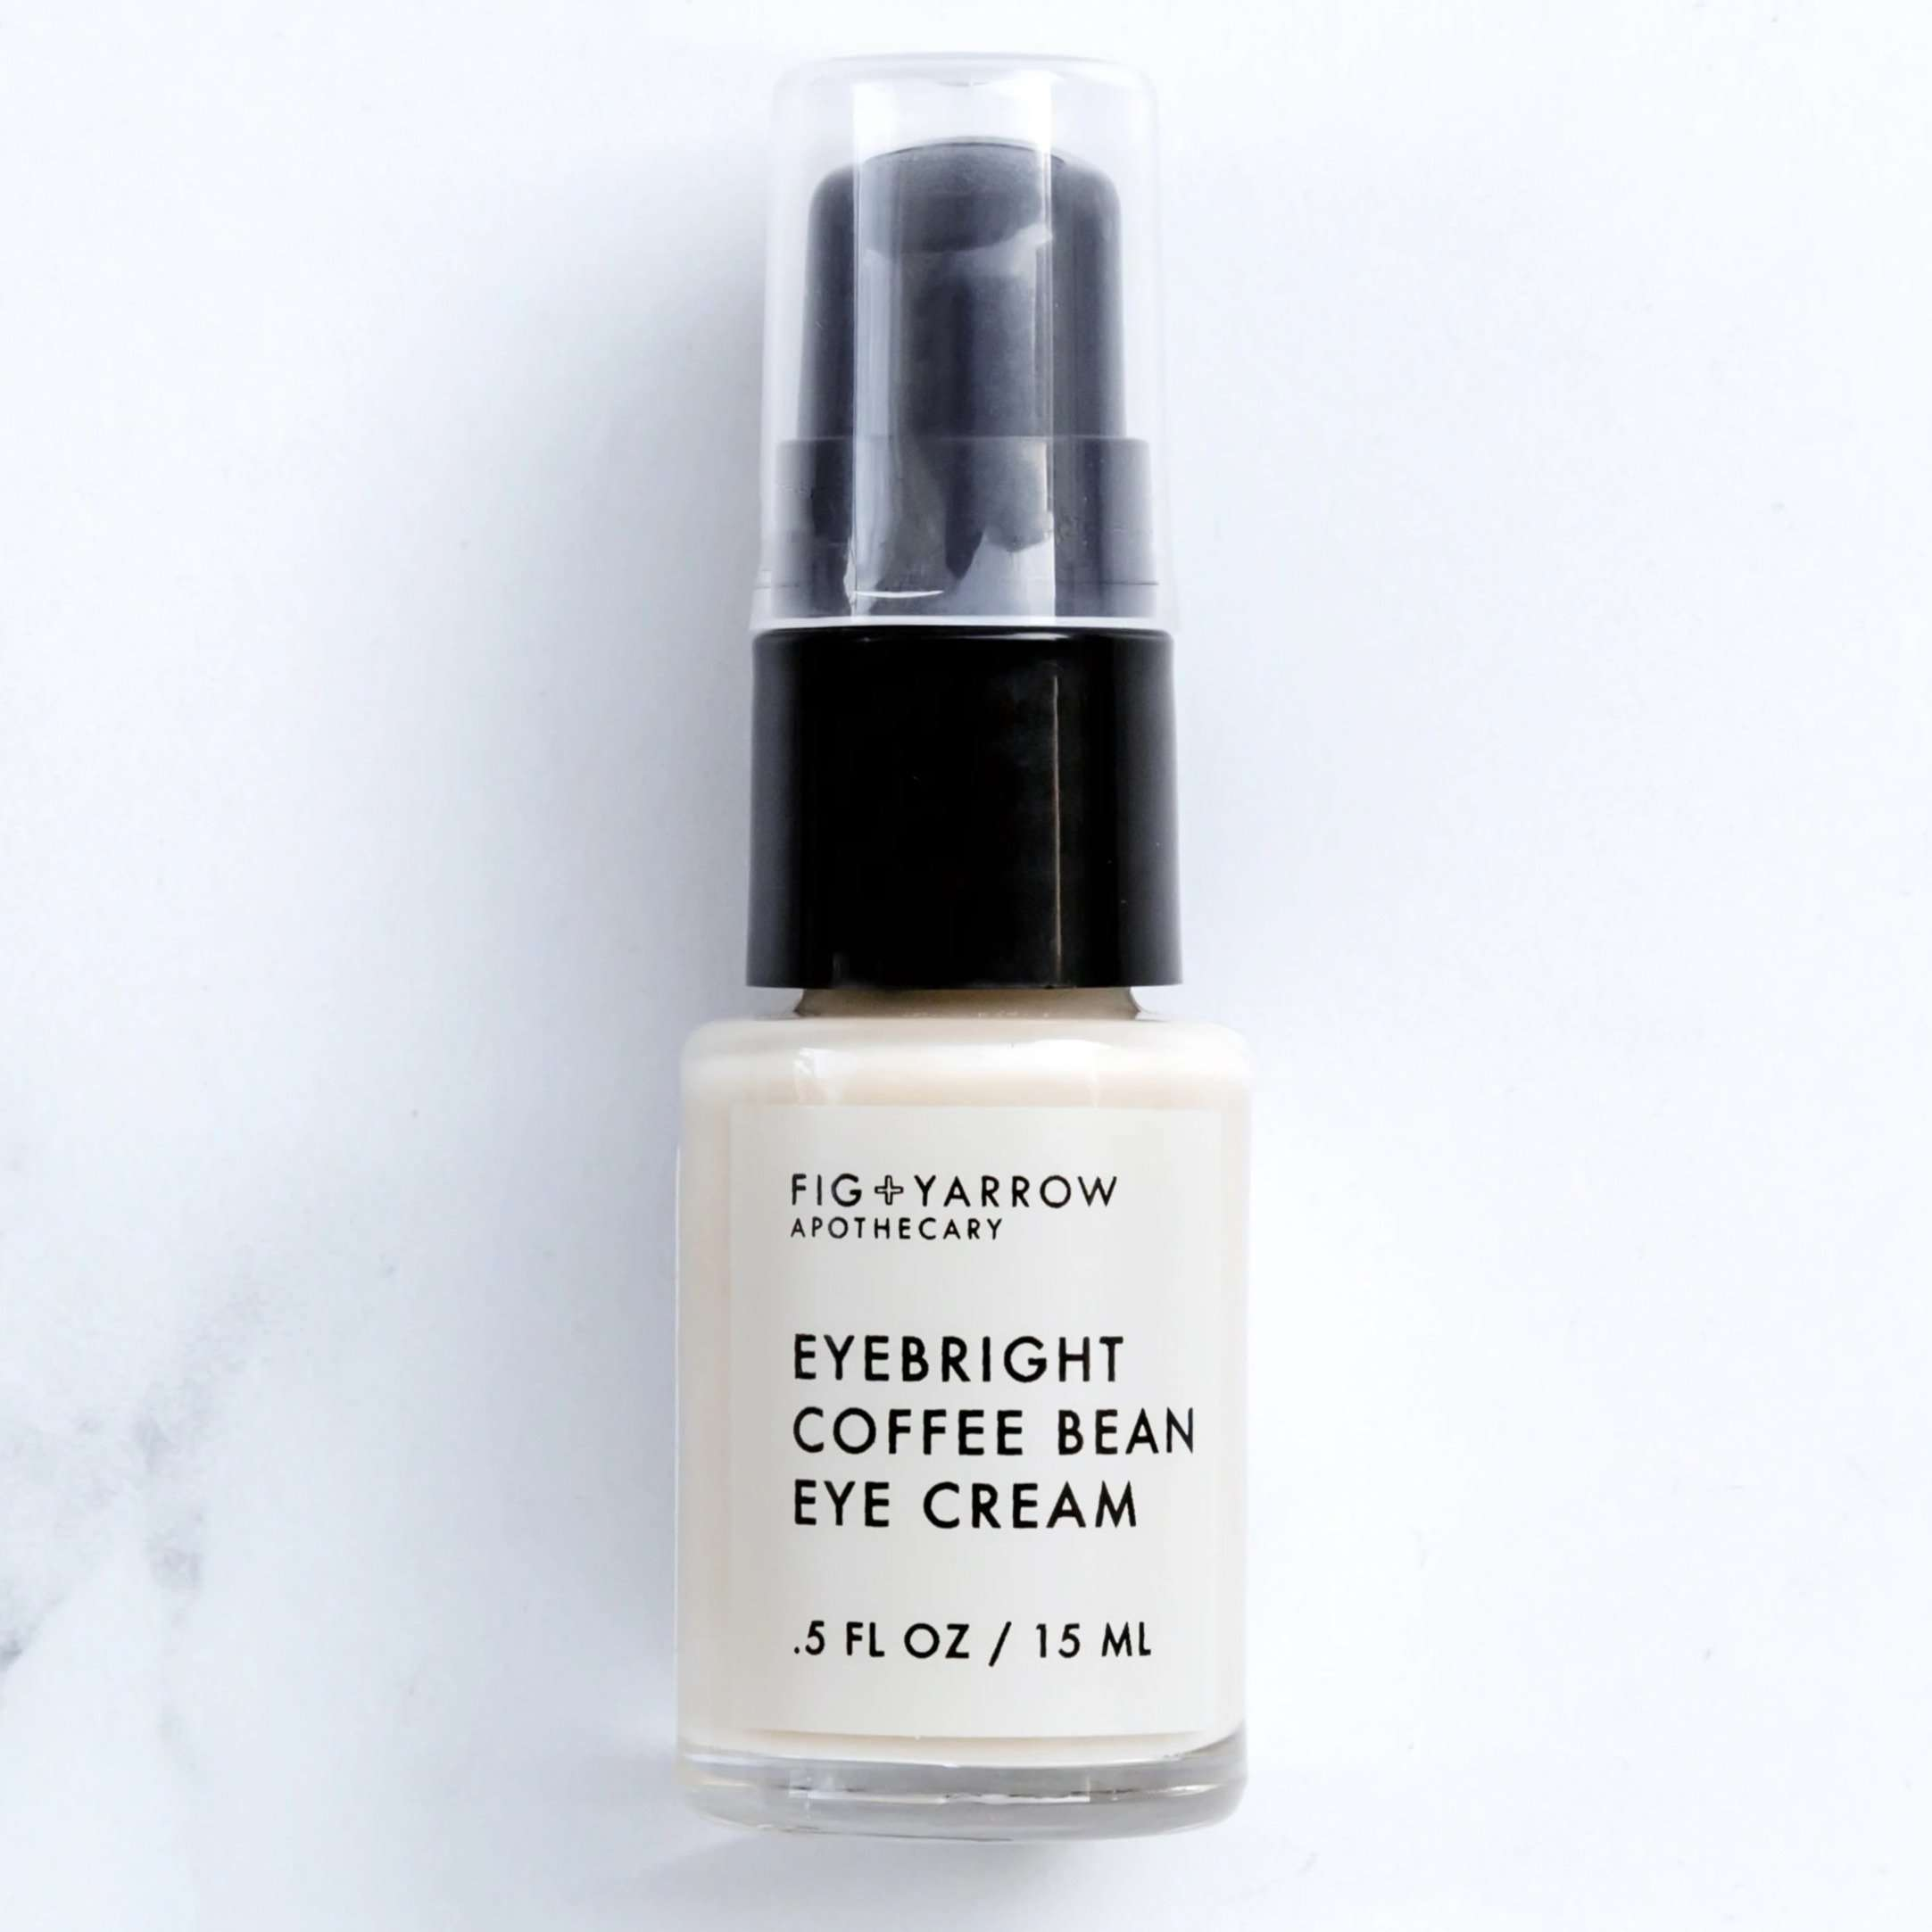 Jiyubox: Eyebright Coffee Bean Eye Cream by Fig + Yarrow